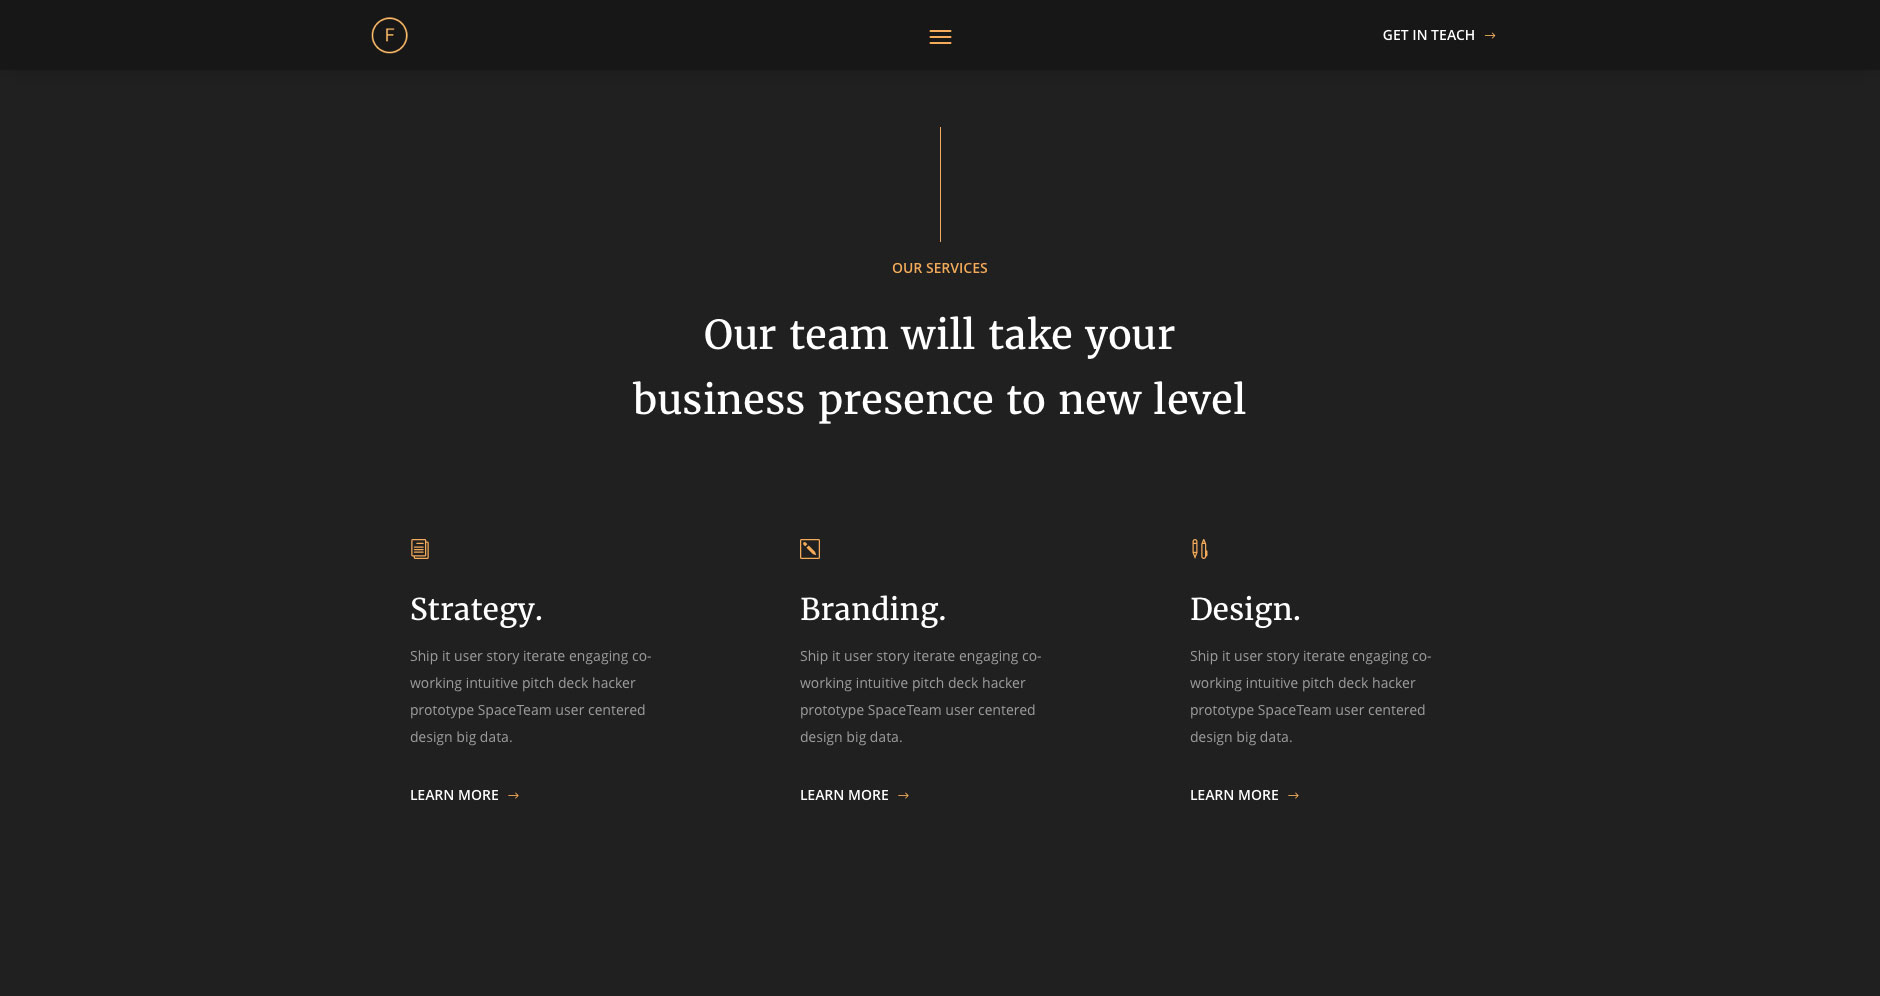 Fusion is a free responsive HTML5 website template for personal portfolio website or agency website built with HTML5 and CSS3. Fusion template is fully responsive and based on the popular Bootstrap framework.